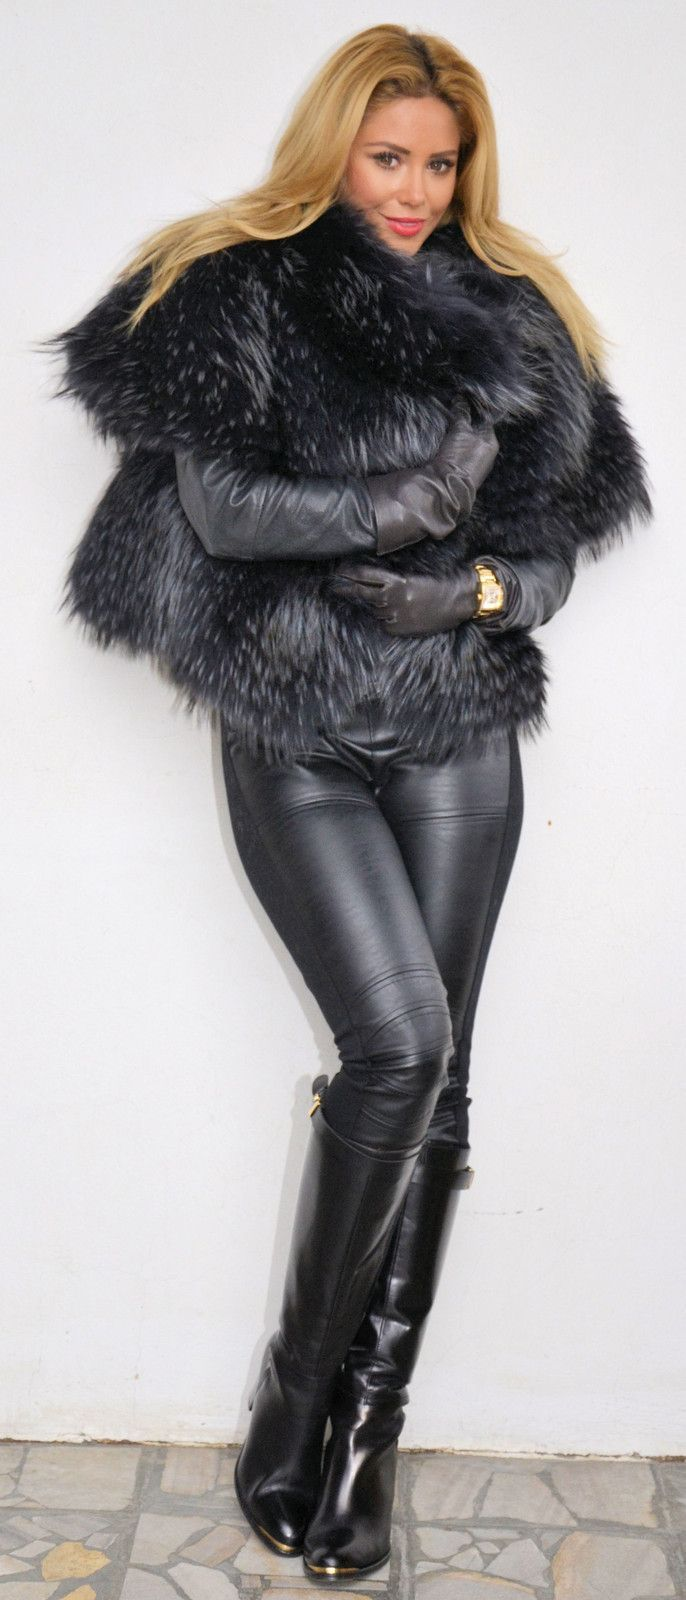 Beautiful blonde in fur and leather!